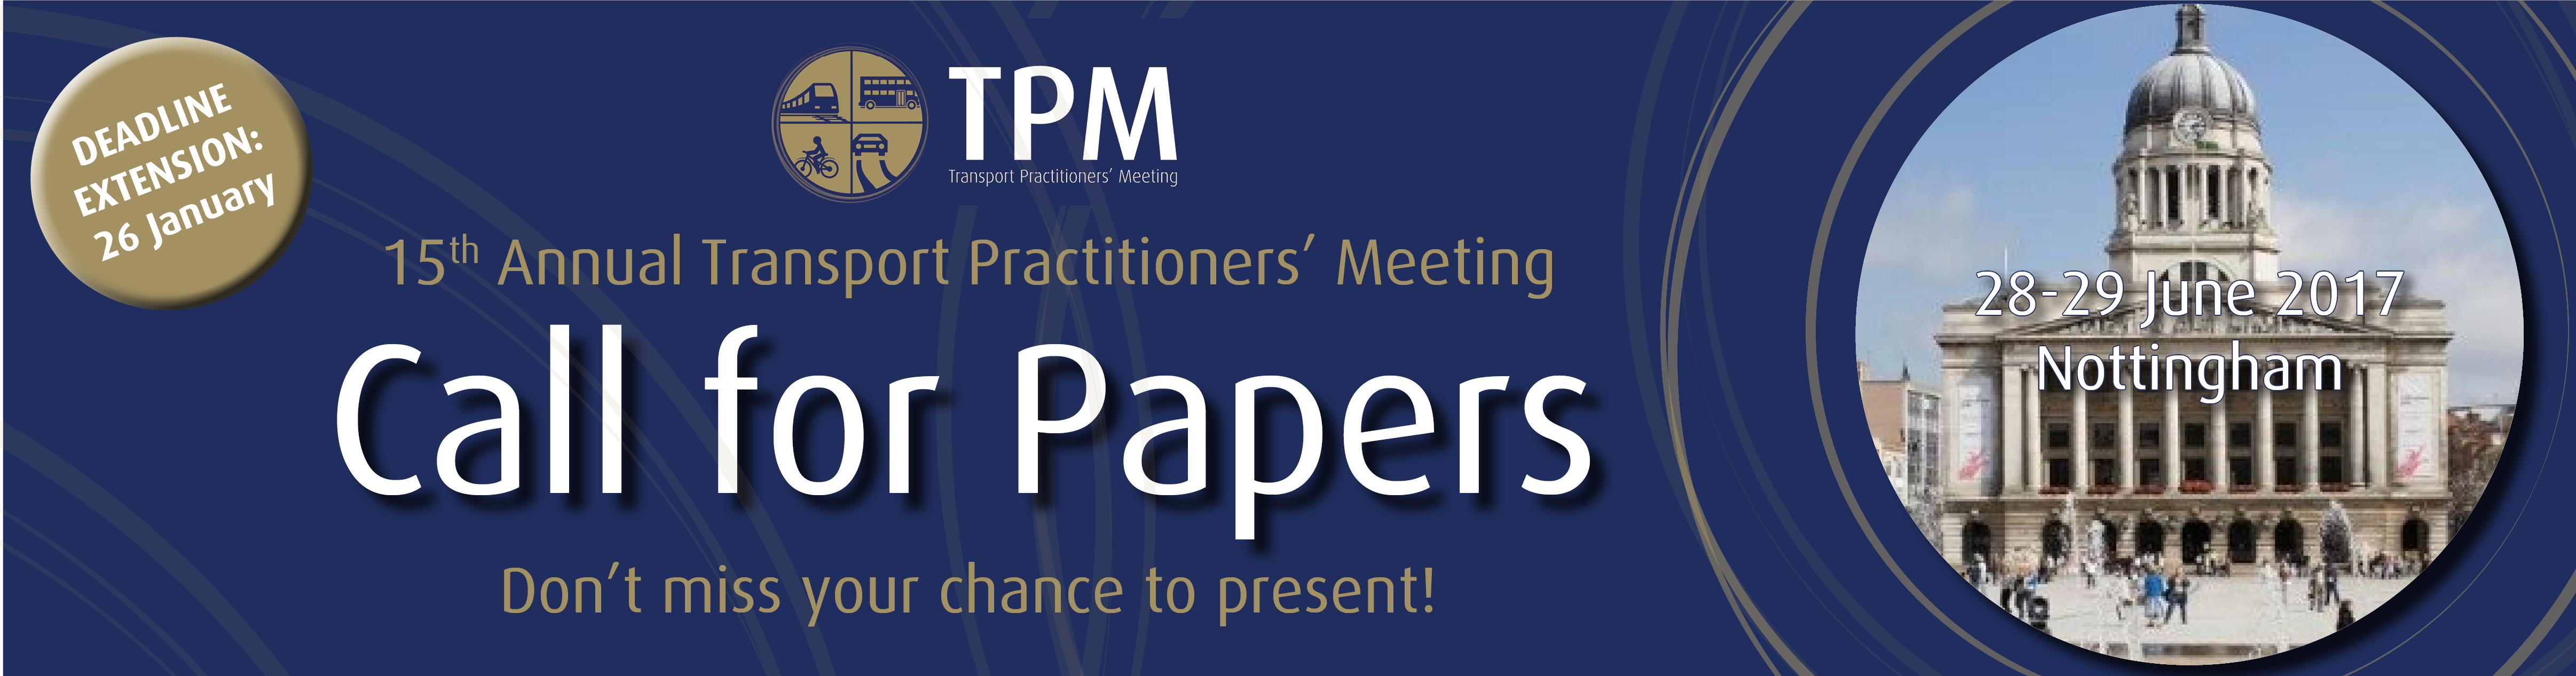 imgTPM Call for Papers 2017